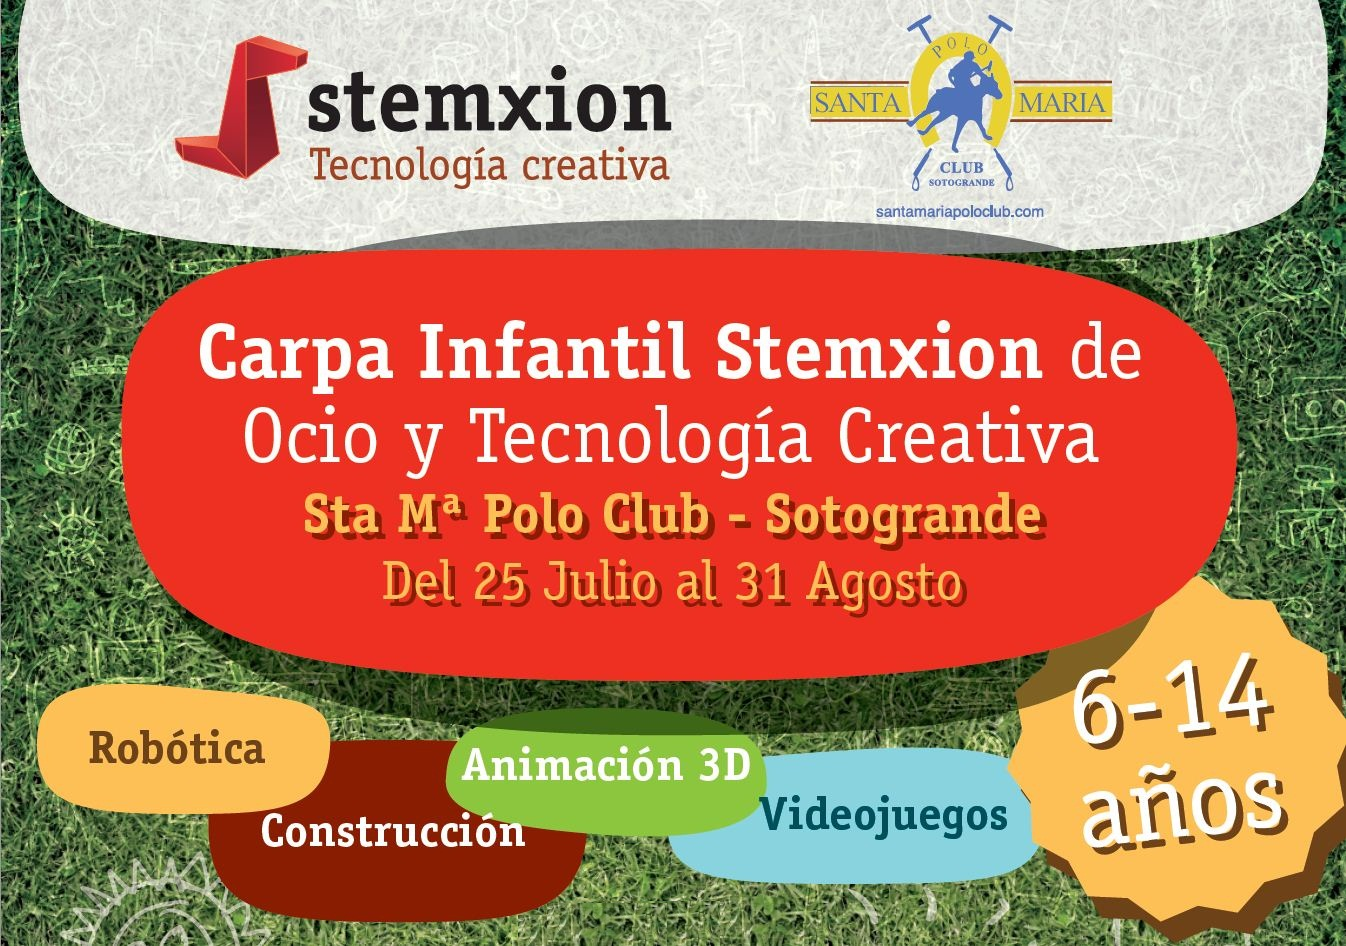 Stemxion Sotogrande Flyer banner web b